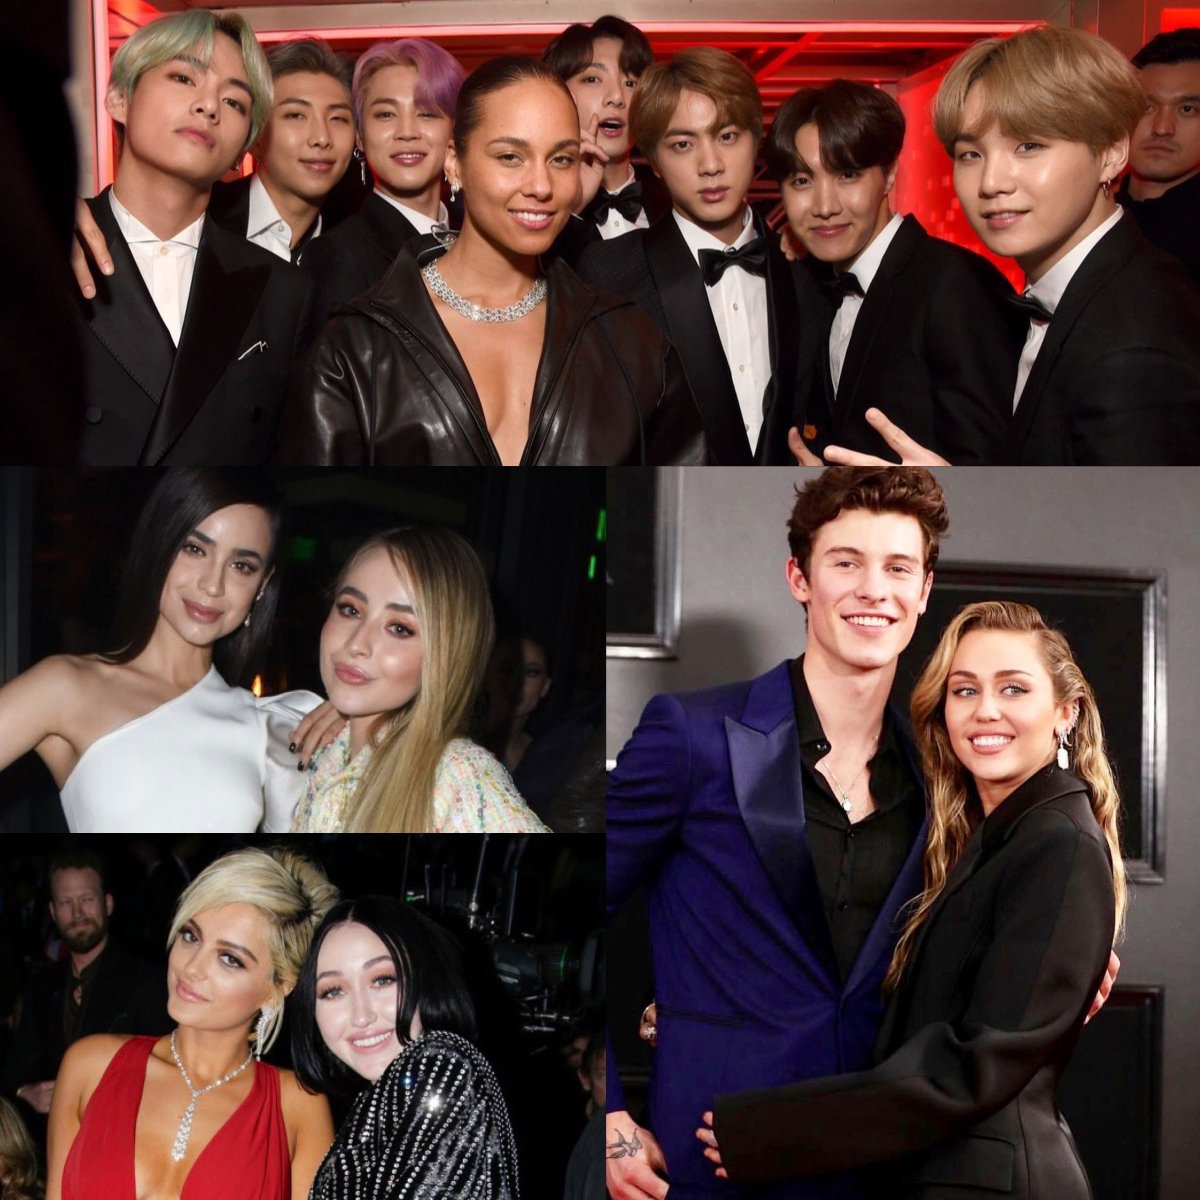 It&#39;s #NationalMakeAFriendDay! We love these friendships from the #GRAMMYs!<br>http://pic.twitter.com/DFz5fzZKQ3